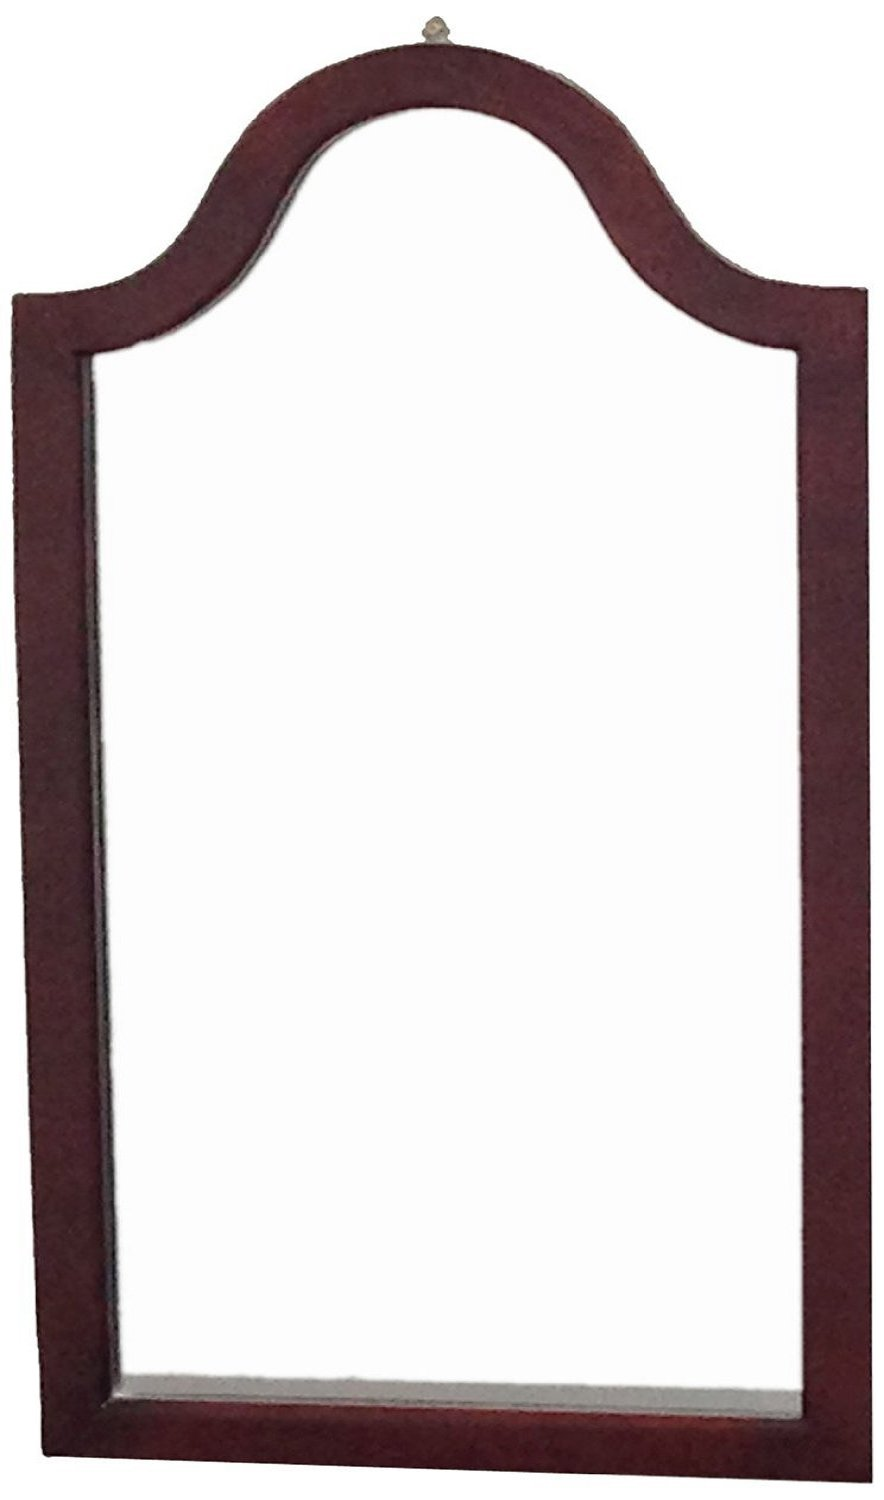 Frenchi Home Furnishing Wall Mirror by Frenchi Home Furnishing